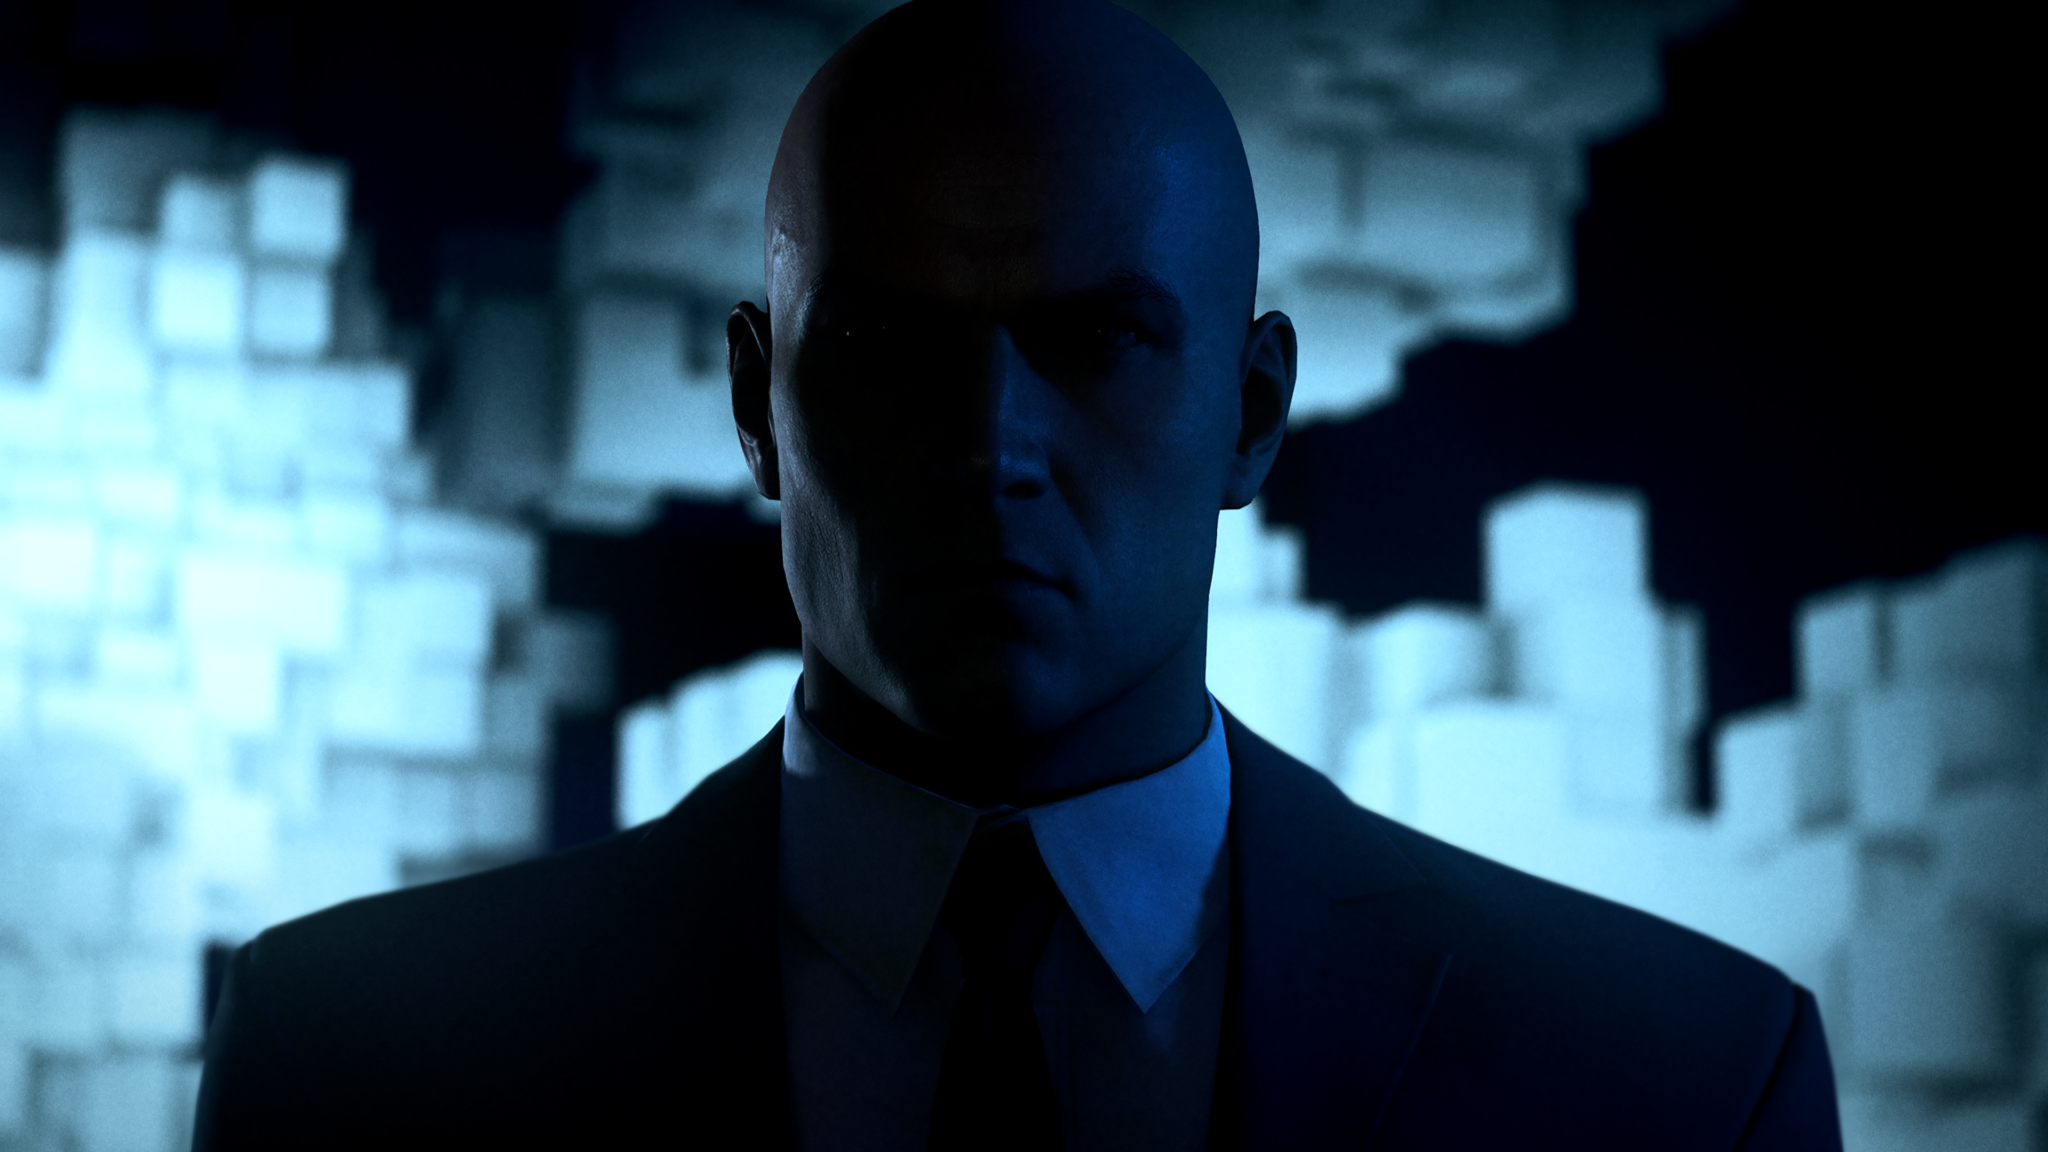 Hitman Trilogy Concludes with Hitman 3 on PS4, 5, Xbox One, Series X and PC - Just Push Start